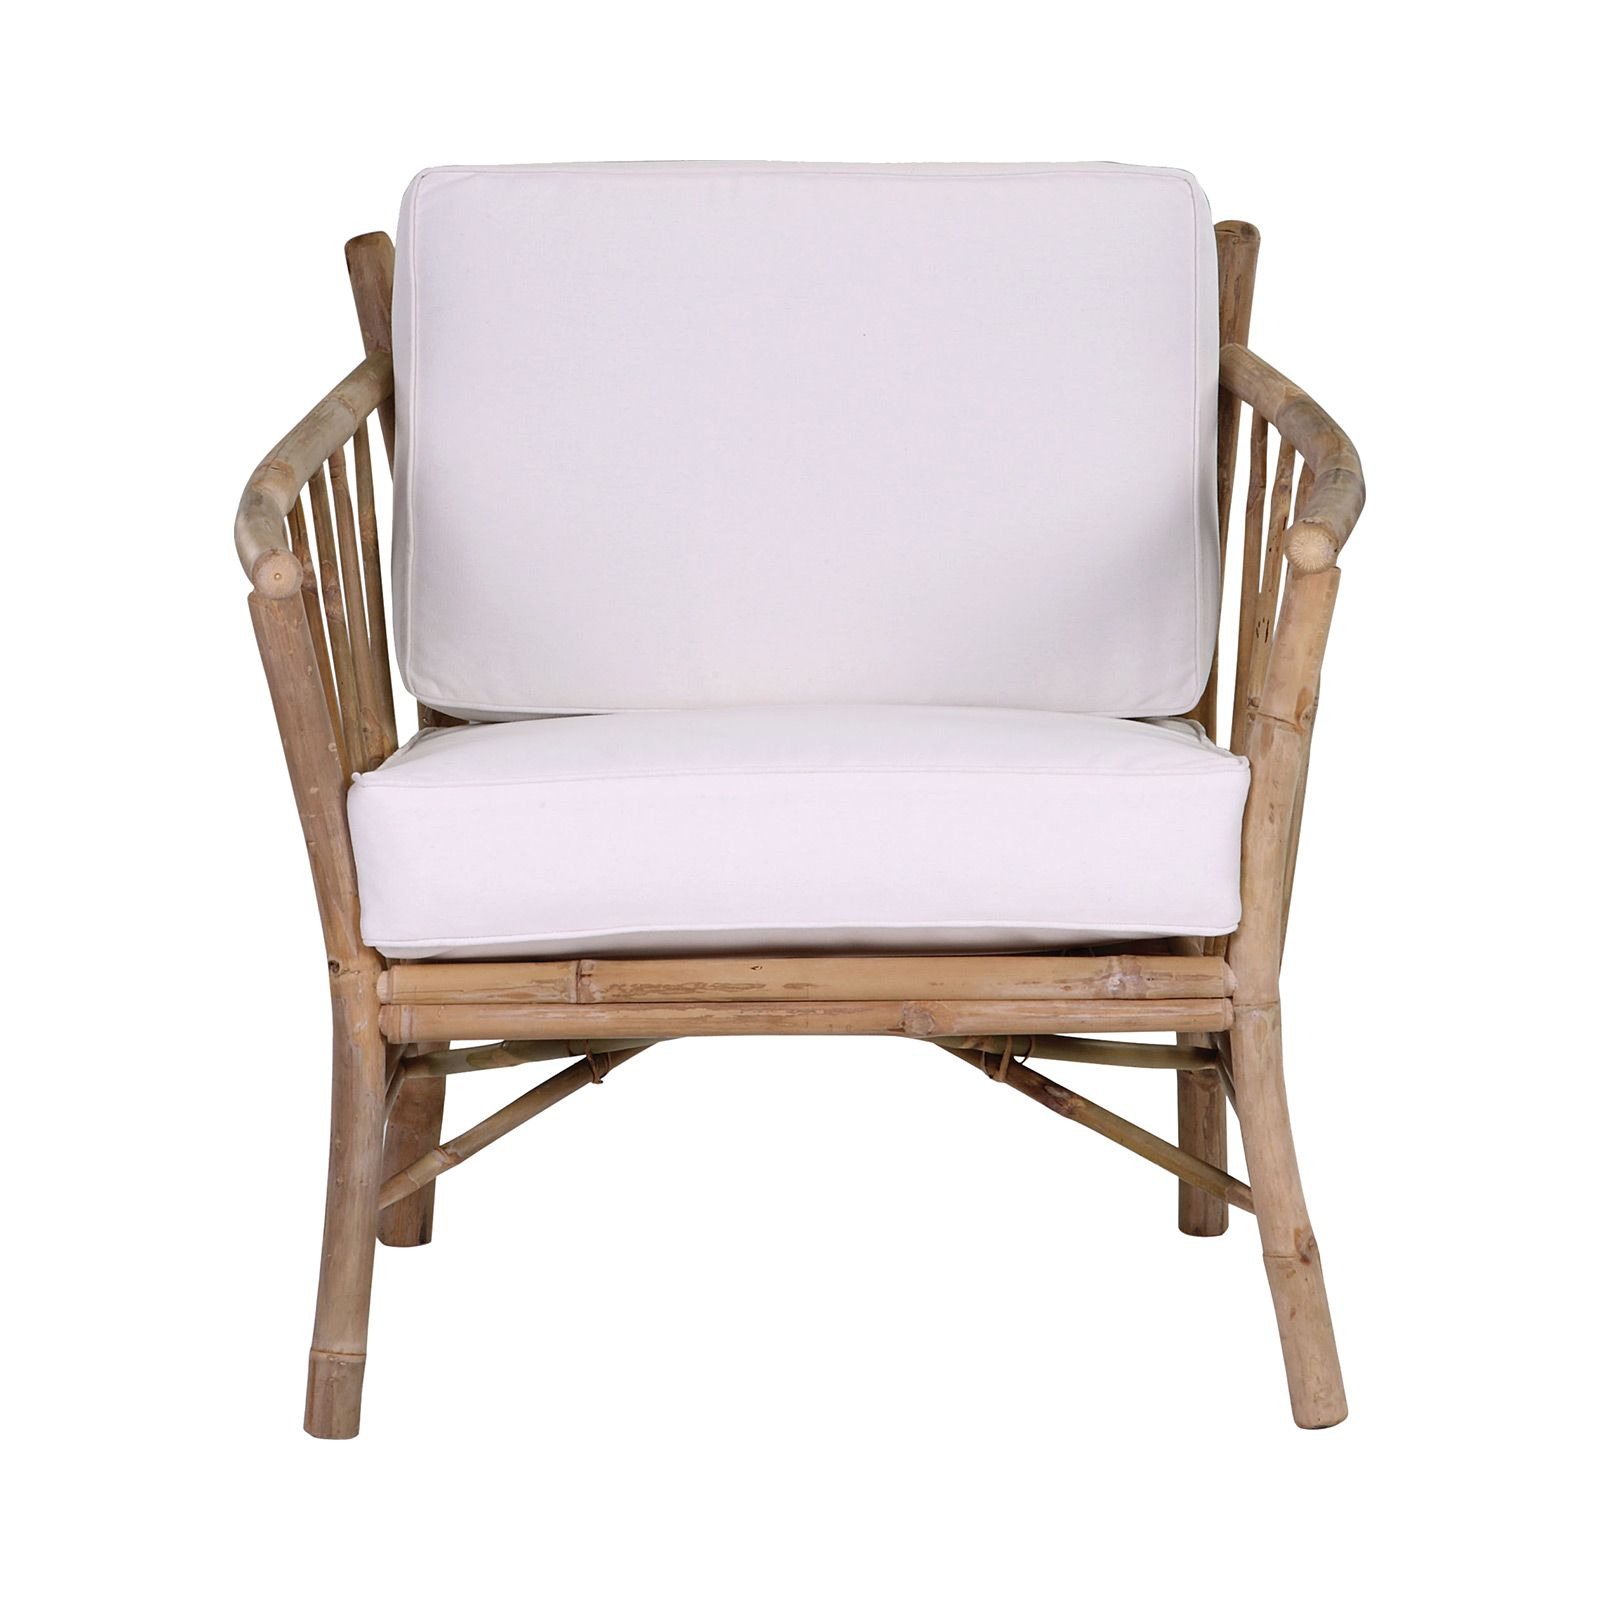 Furniture And Decor For The Modern Lifestyle Chair White Accent